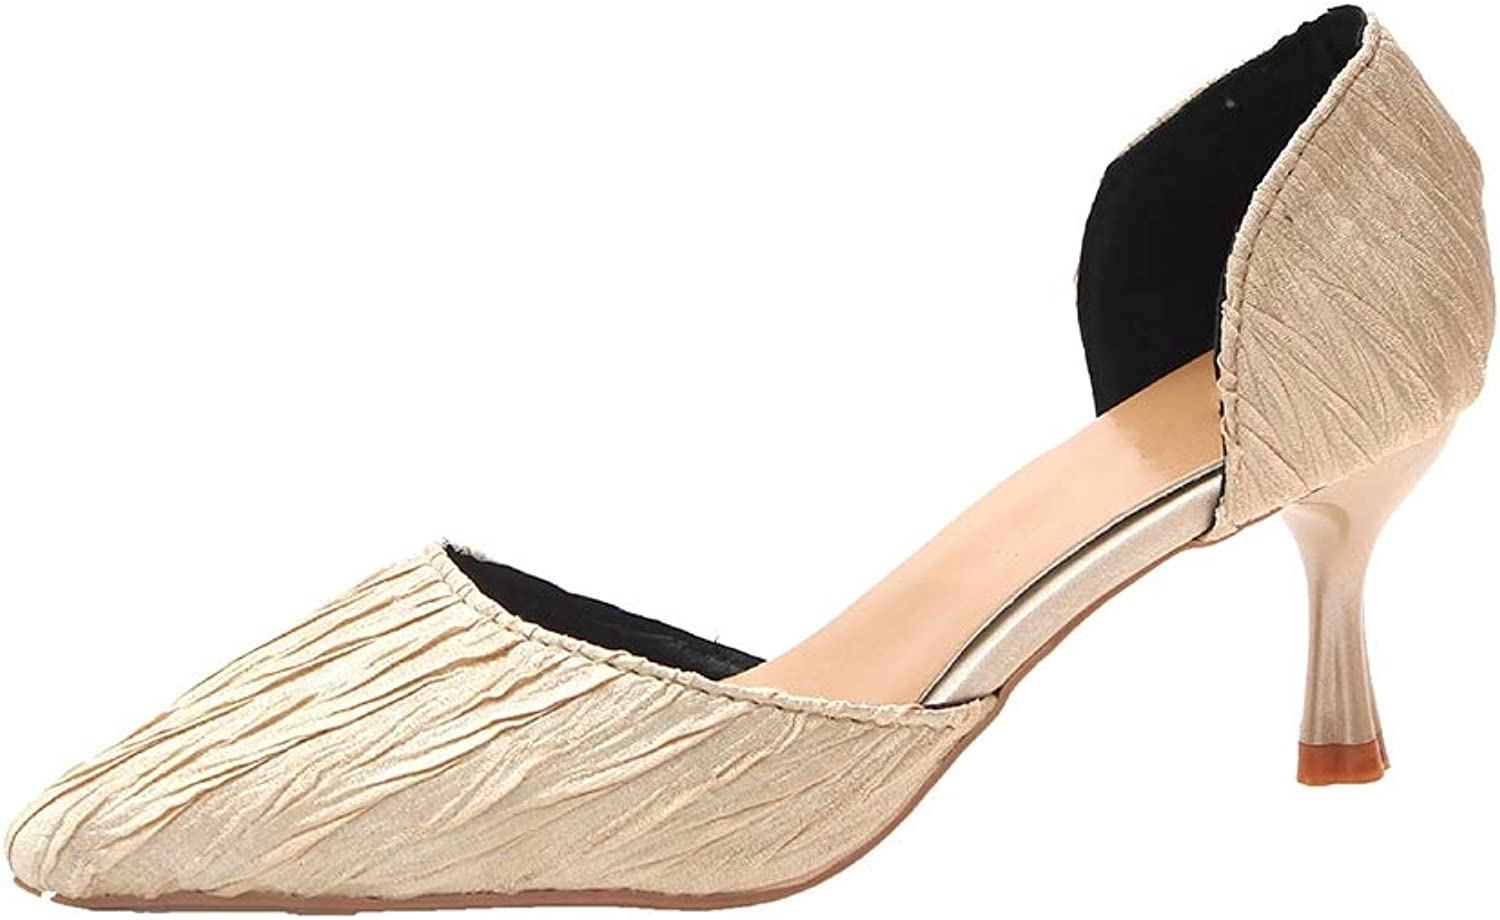 Sam Carle Women's Pumps,Closed- Toe Elegant Non-Slip Beige bluee Daily Office shoes